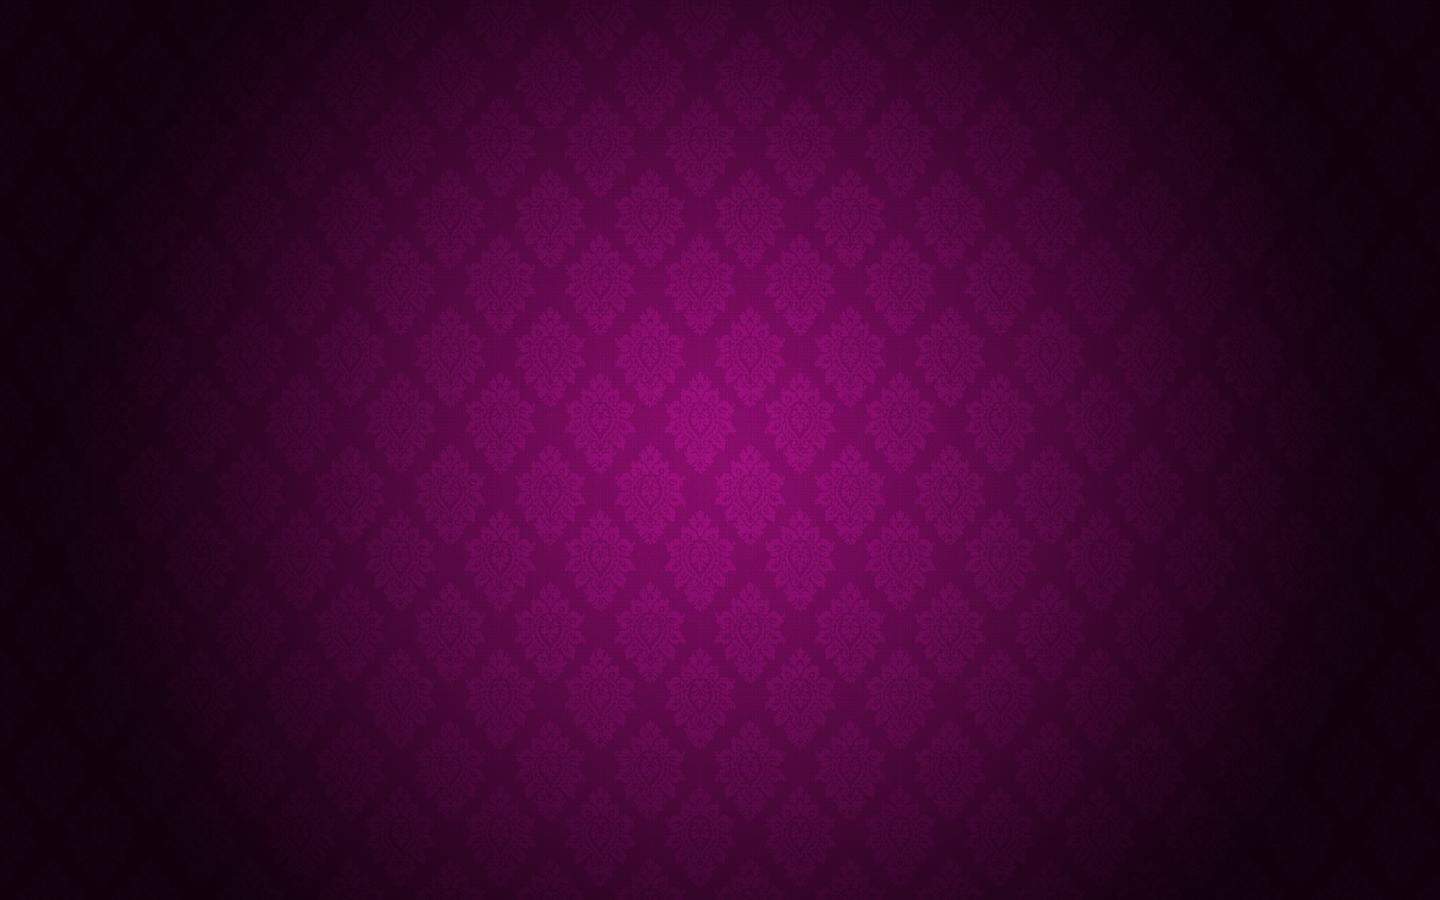 Pink Purple Full Hd Backgrounds Vintage 1440x900 pixel Vintage HD 1440x900